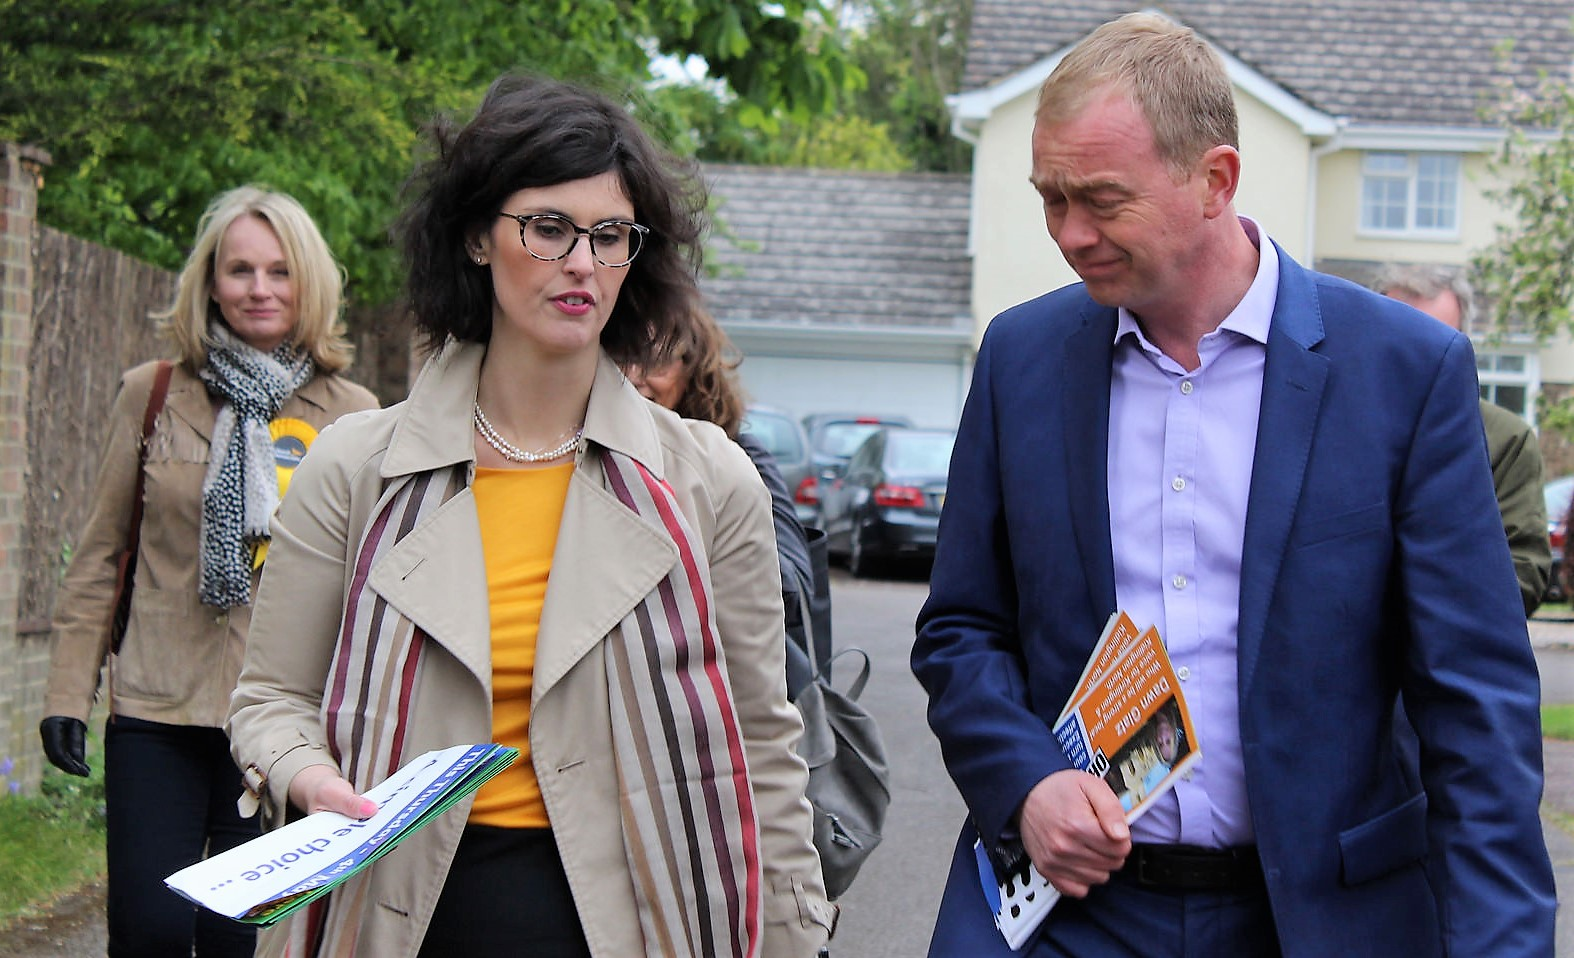 Tim Farron campaigning in Oxford